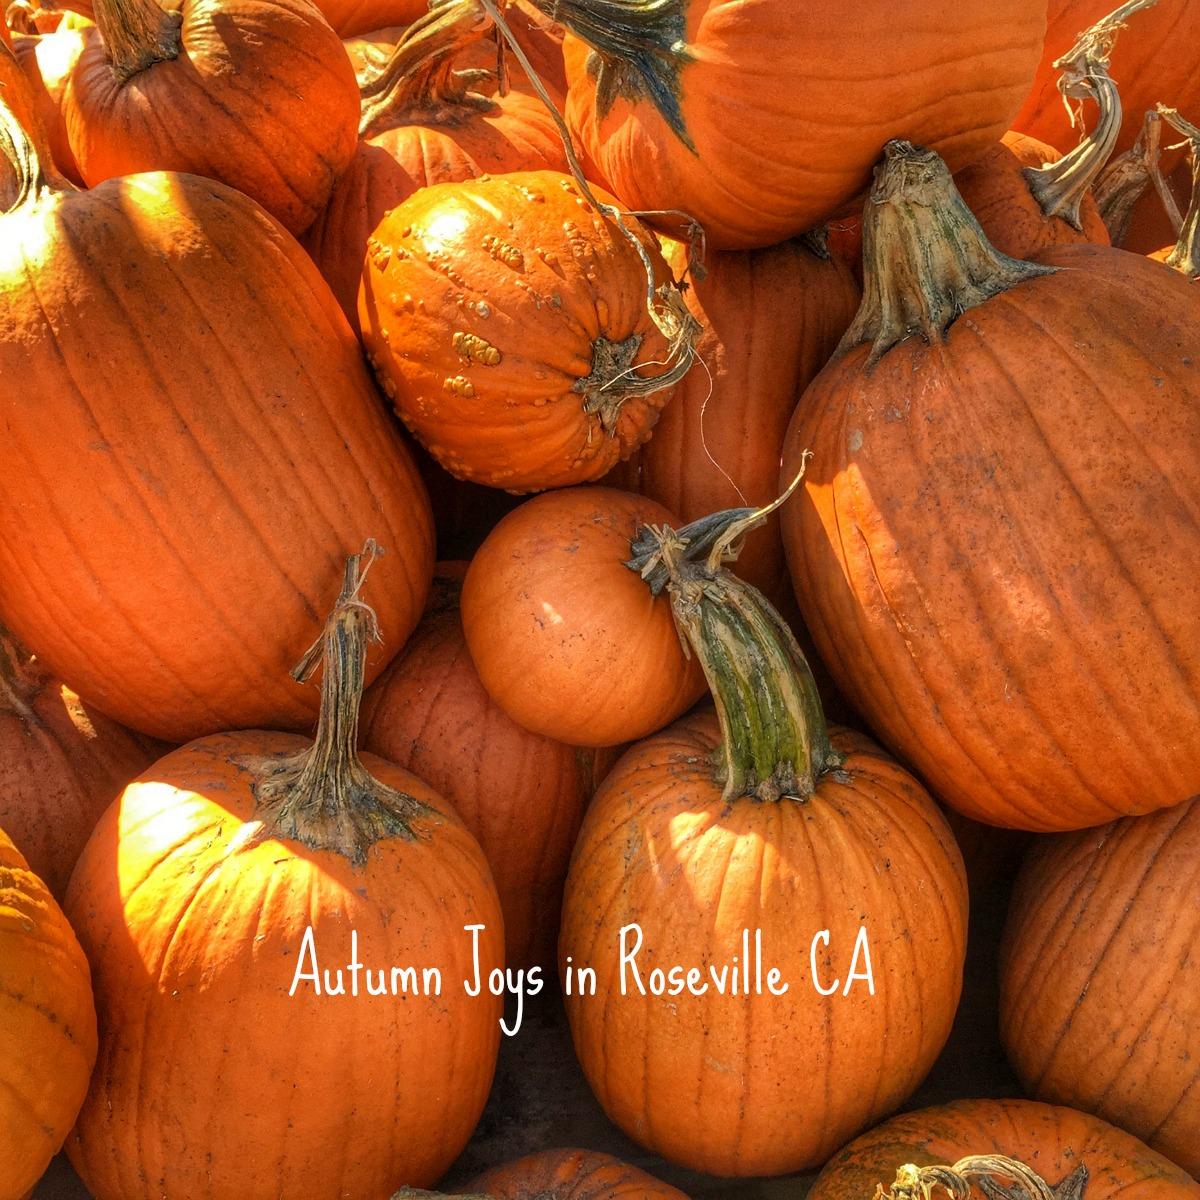 Autumn joys spotted at Green Acres in Roseville CA via REALTOR Kaye Swain blog